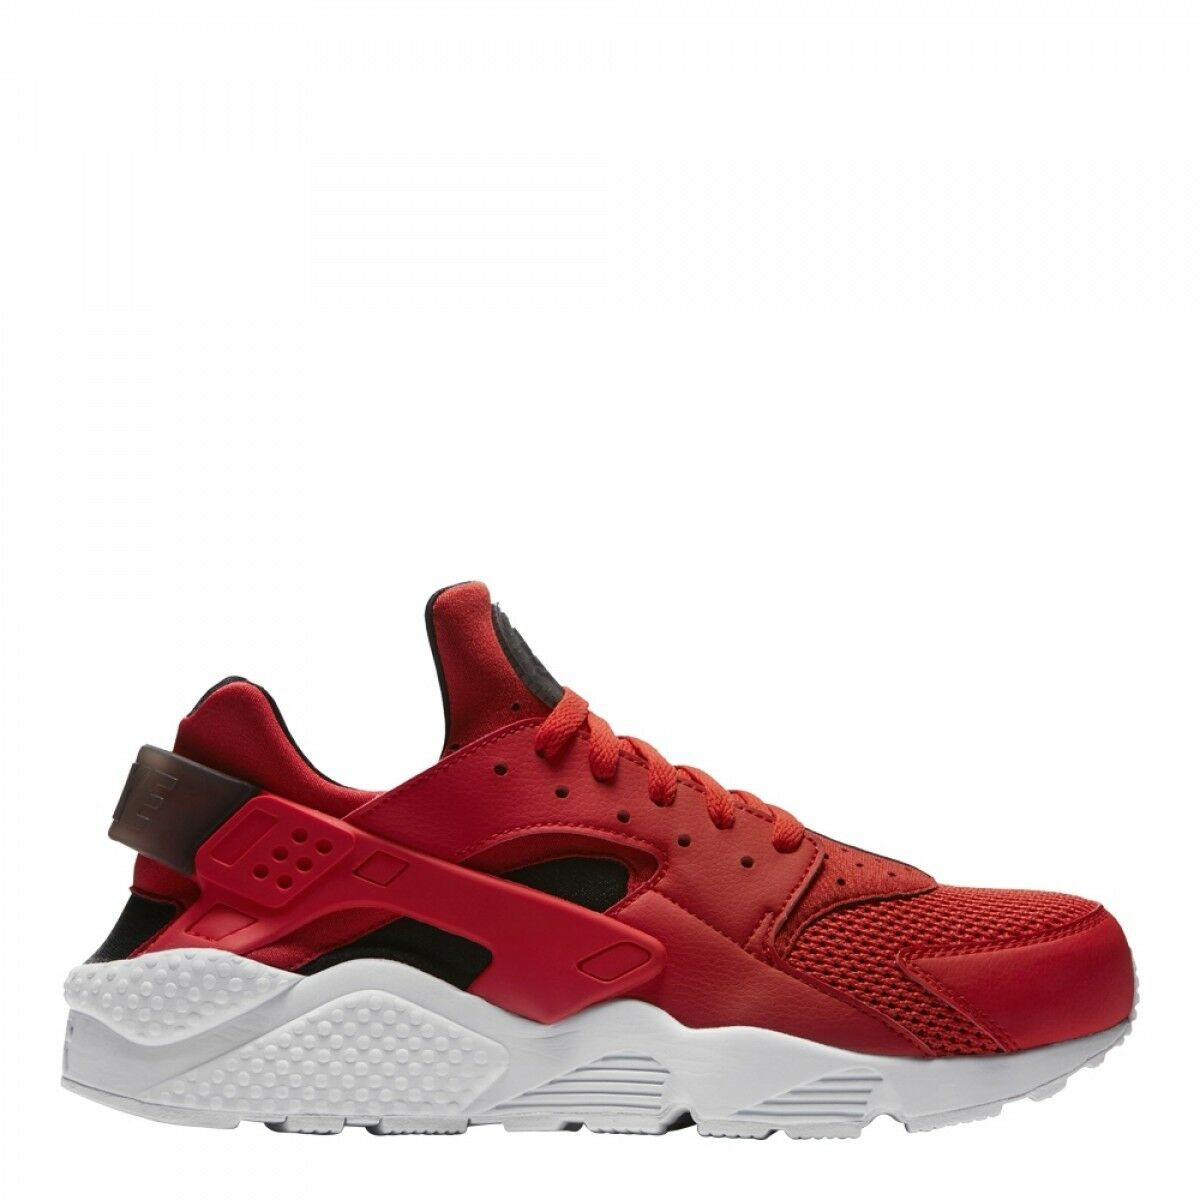 Nike Air Huarache Habablack Red Black and White 318429 609 Mens and Kids Size